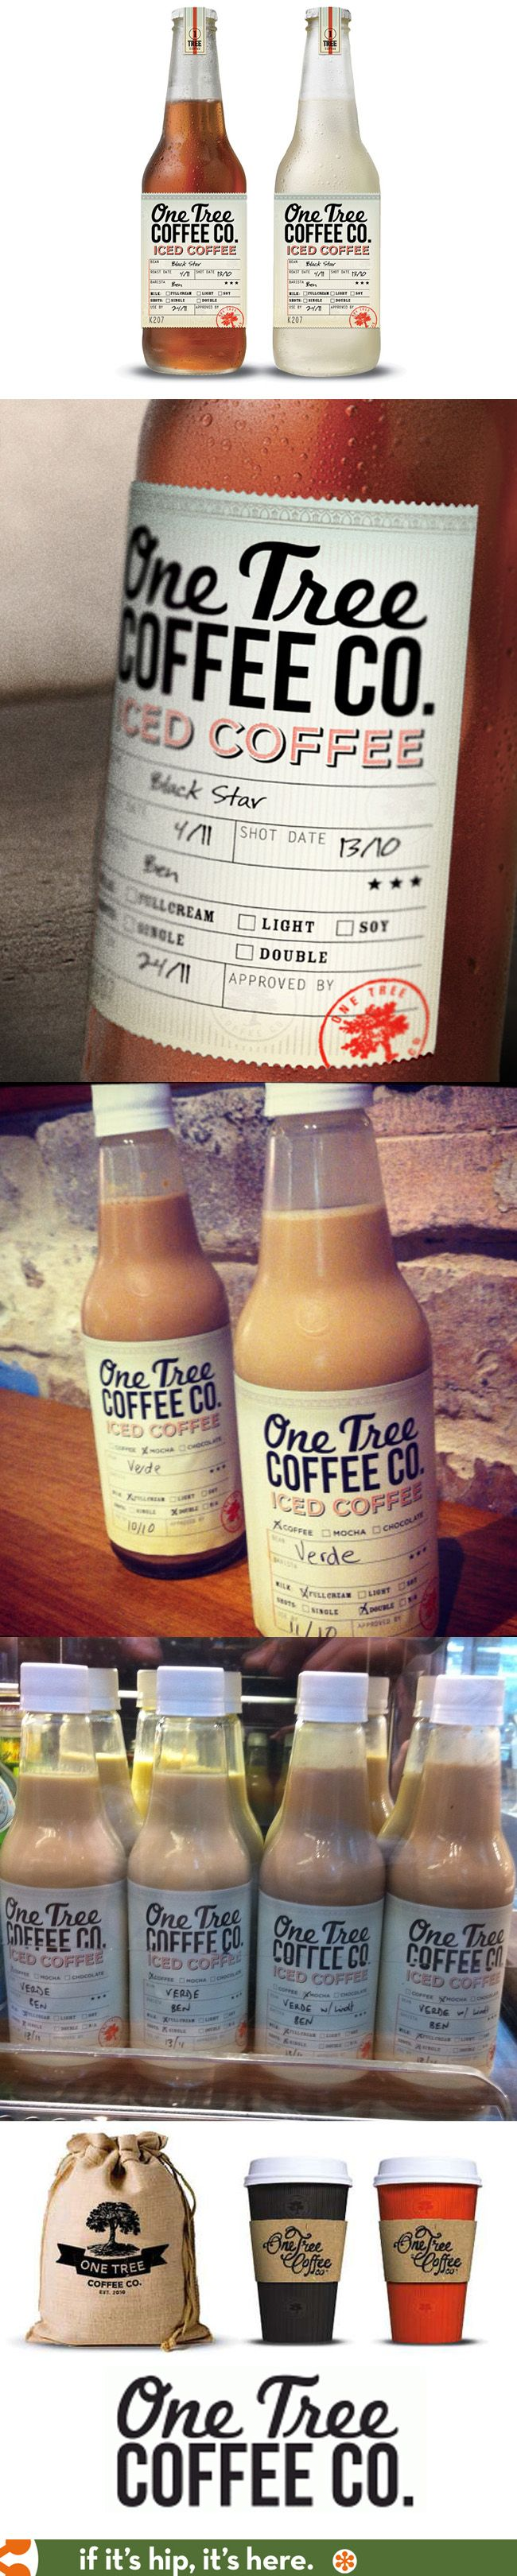 logo, labels and packaging for Australia's One Tree Coffee Company